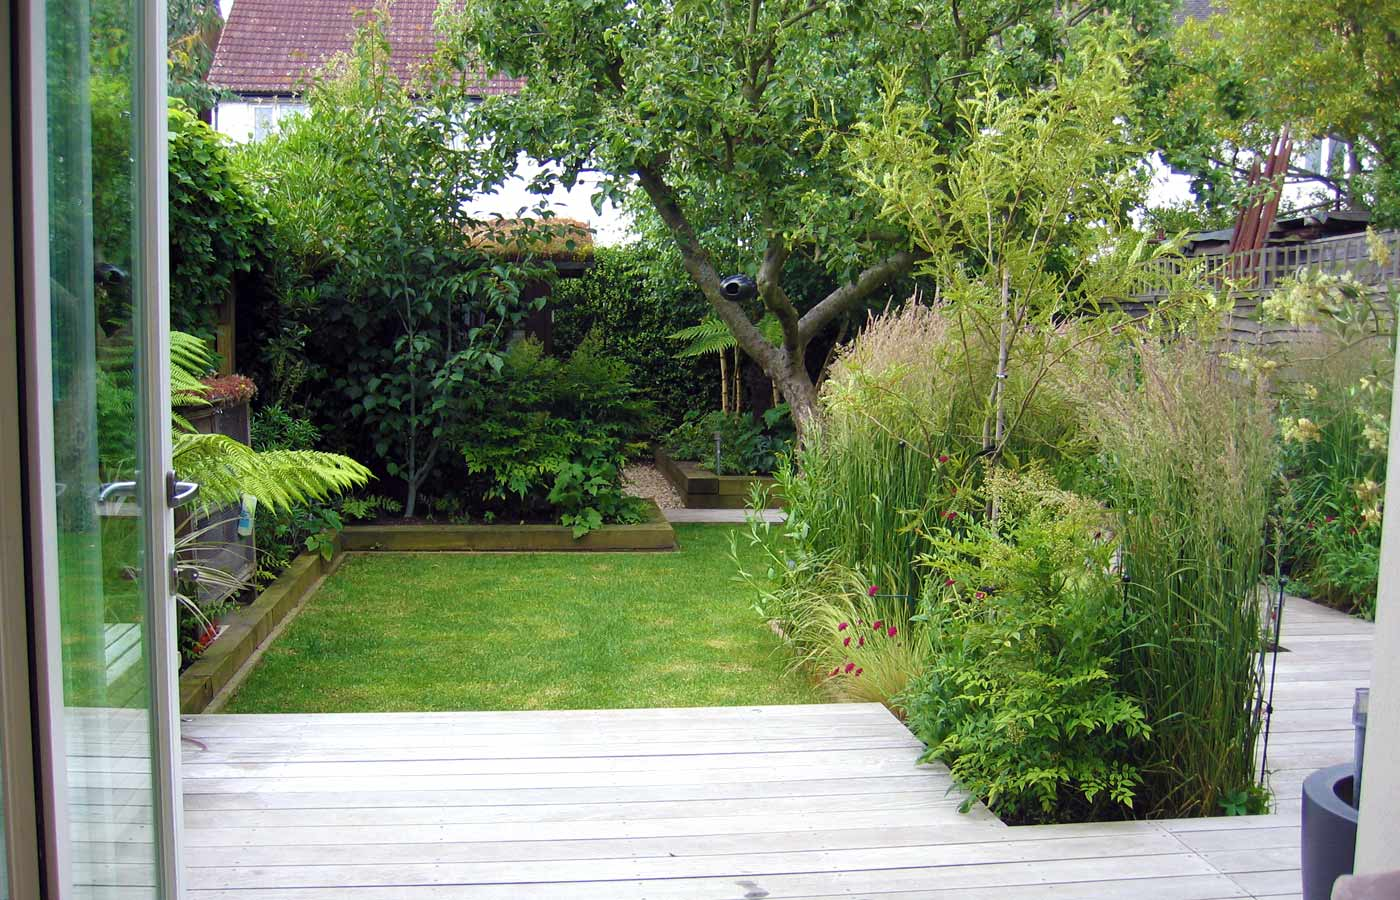 Pin small garden decking ideas image search results on for Compact garden designs